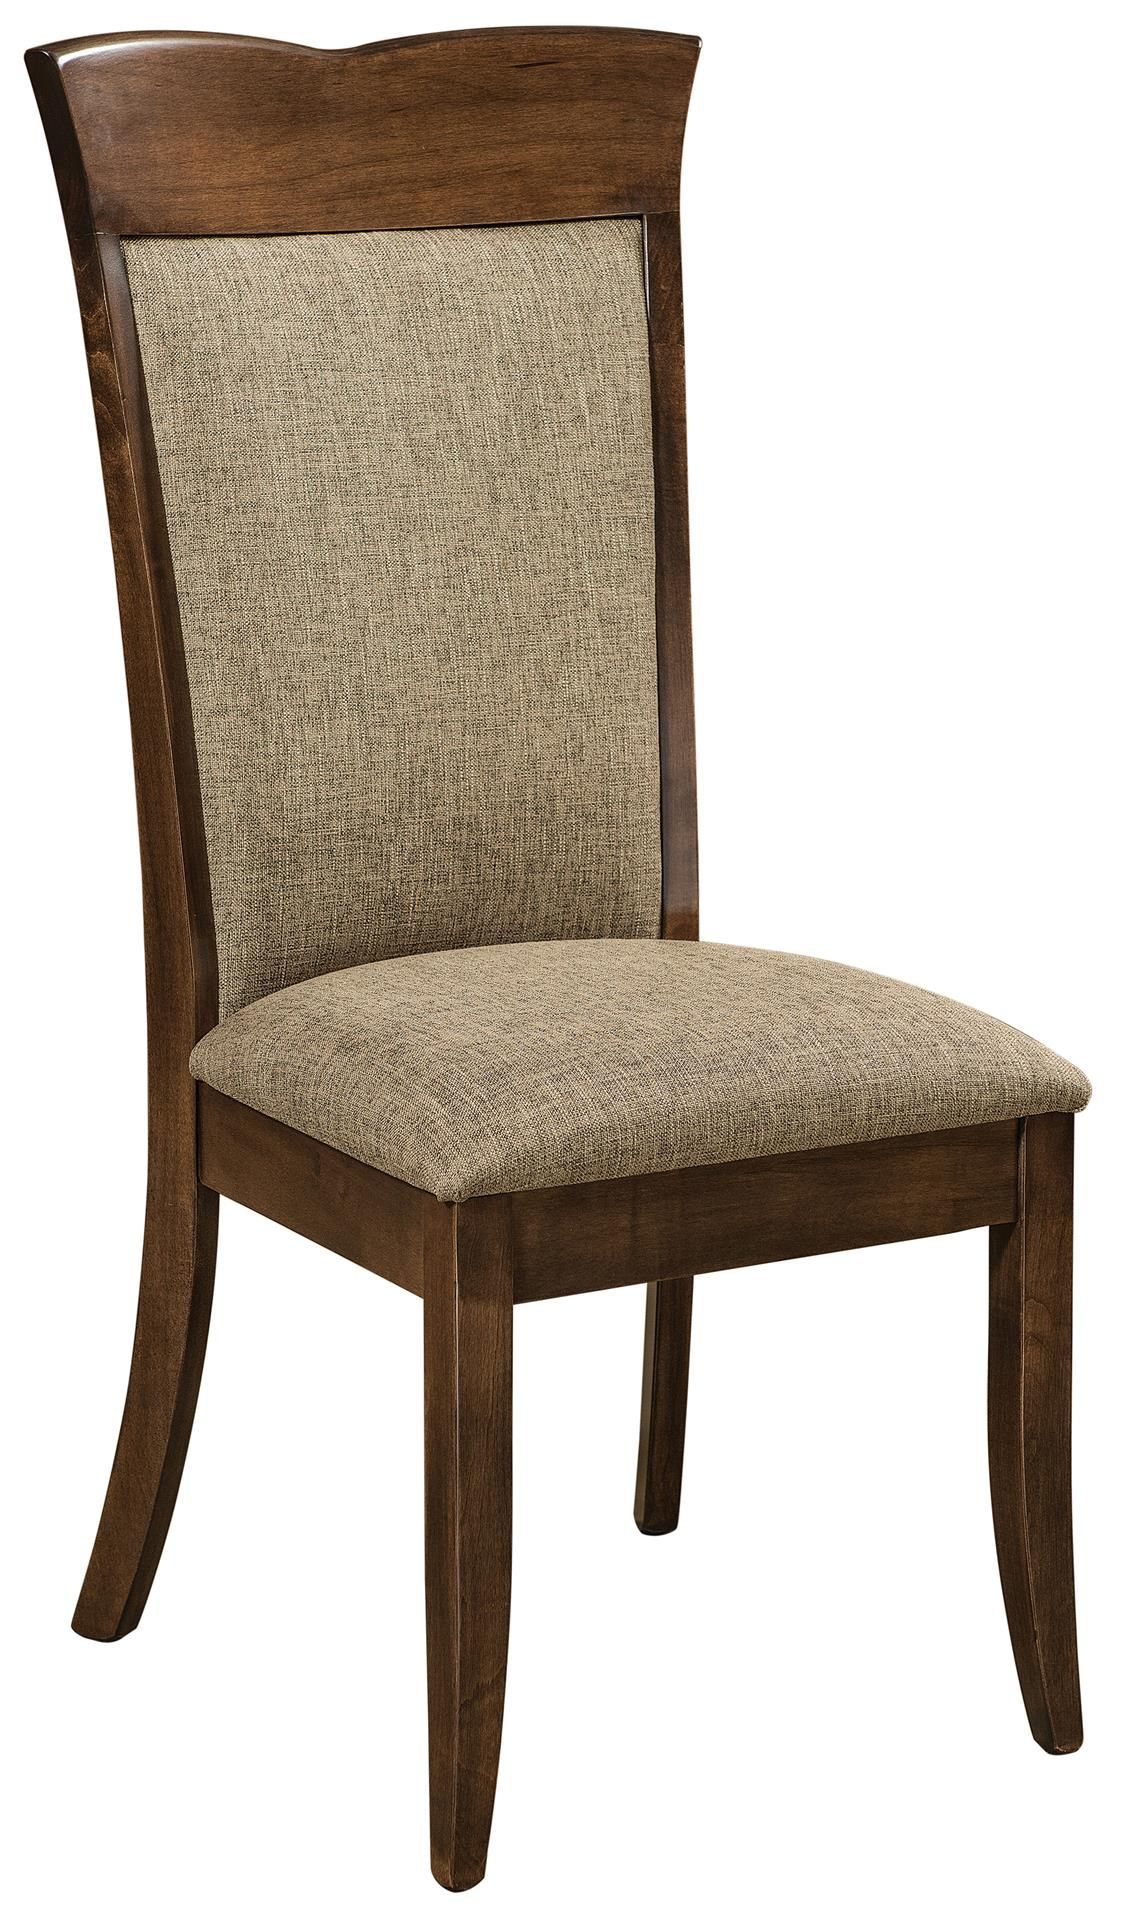 fabric dining chairs on amish sante fe dining chair dining room chairs upholstered dining room chairs modern dining chairs amish sante fe dining chair dining